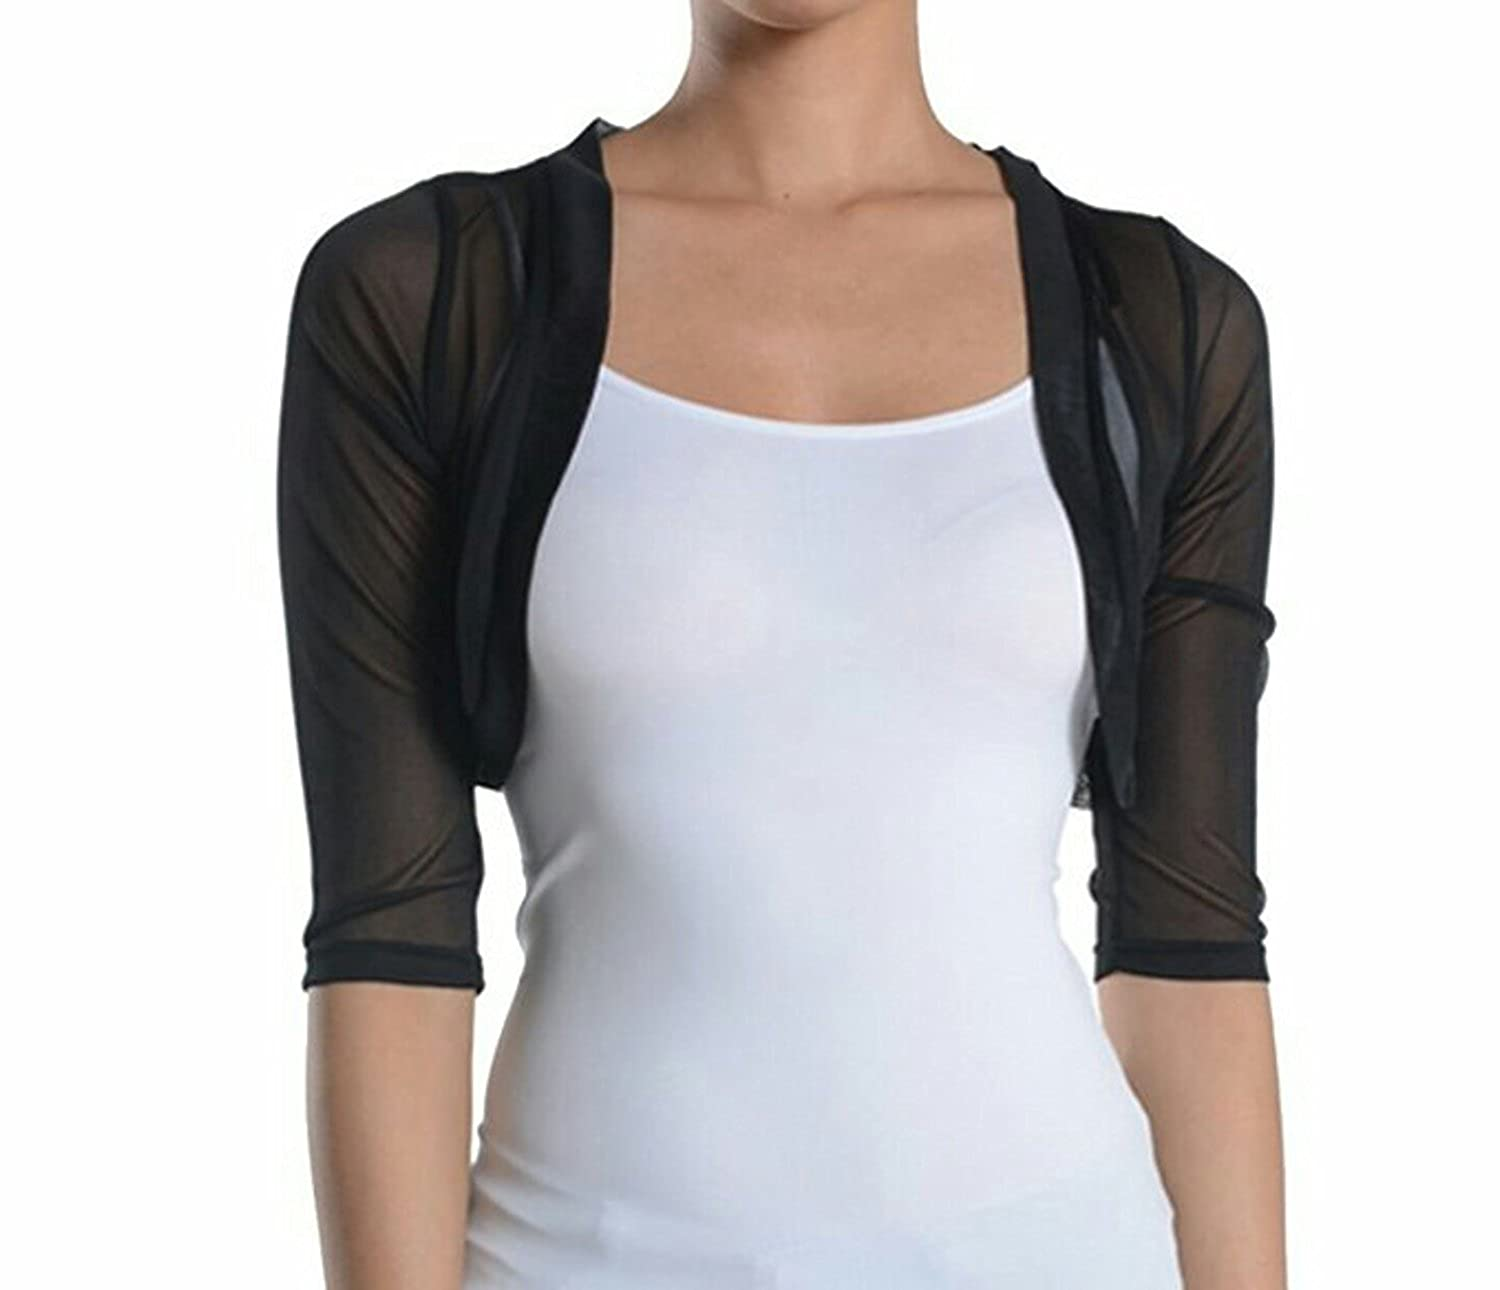 Amazon Best Sellers: Best Women's Shrug Sweaters